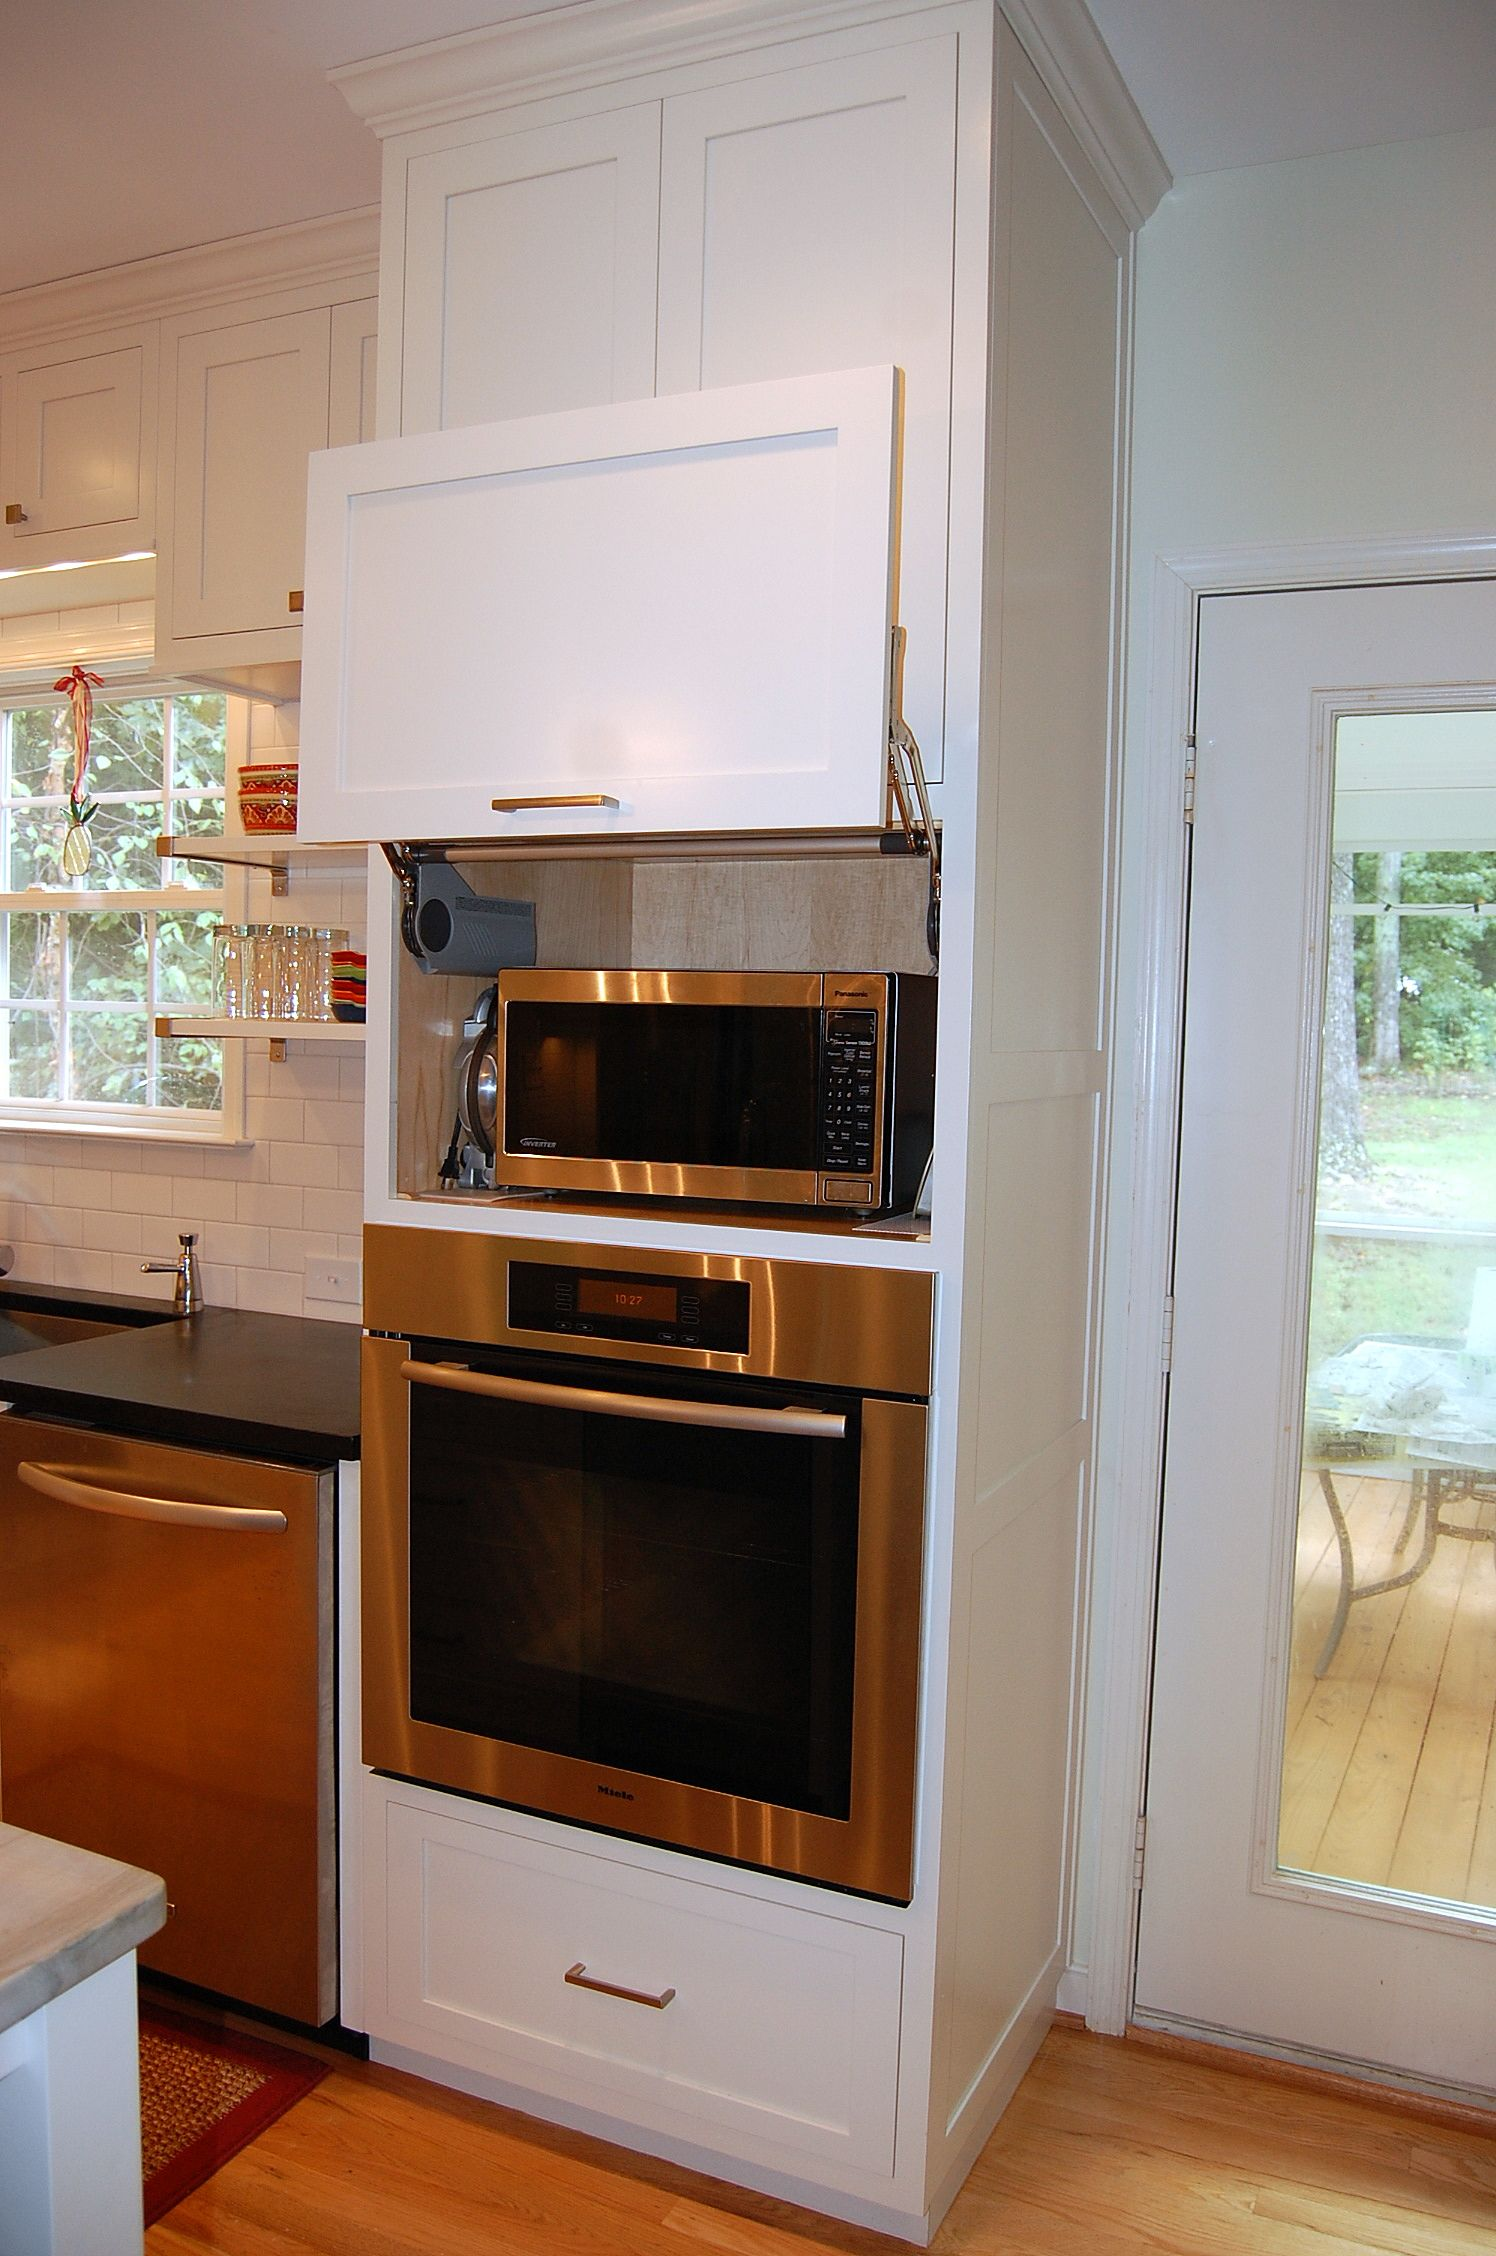 Oven In Island Unit Hidden Microwave Above Wall Oven Unit Kitchen Design By